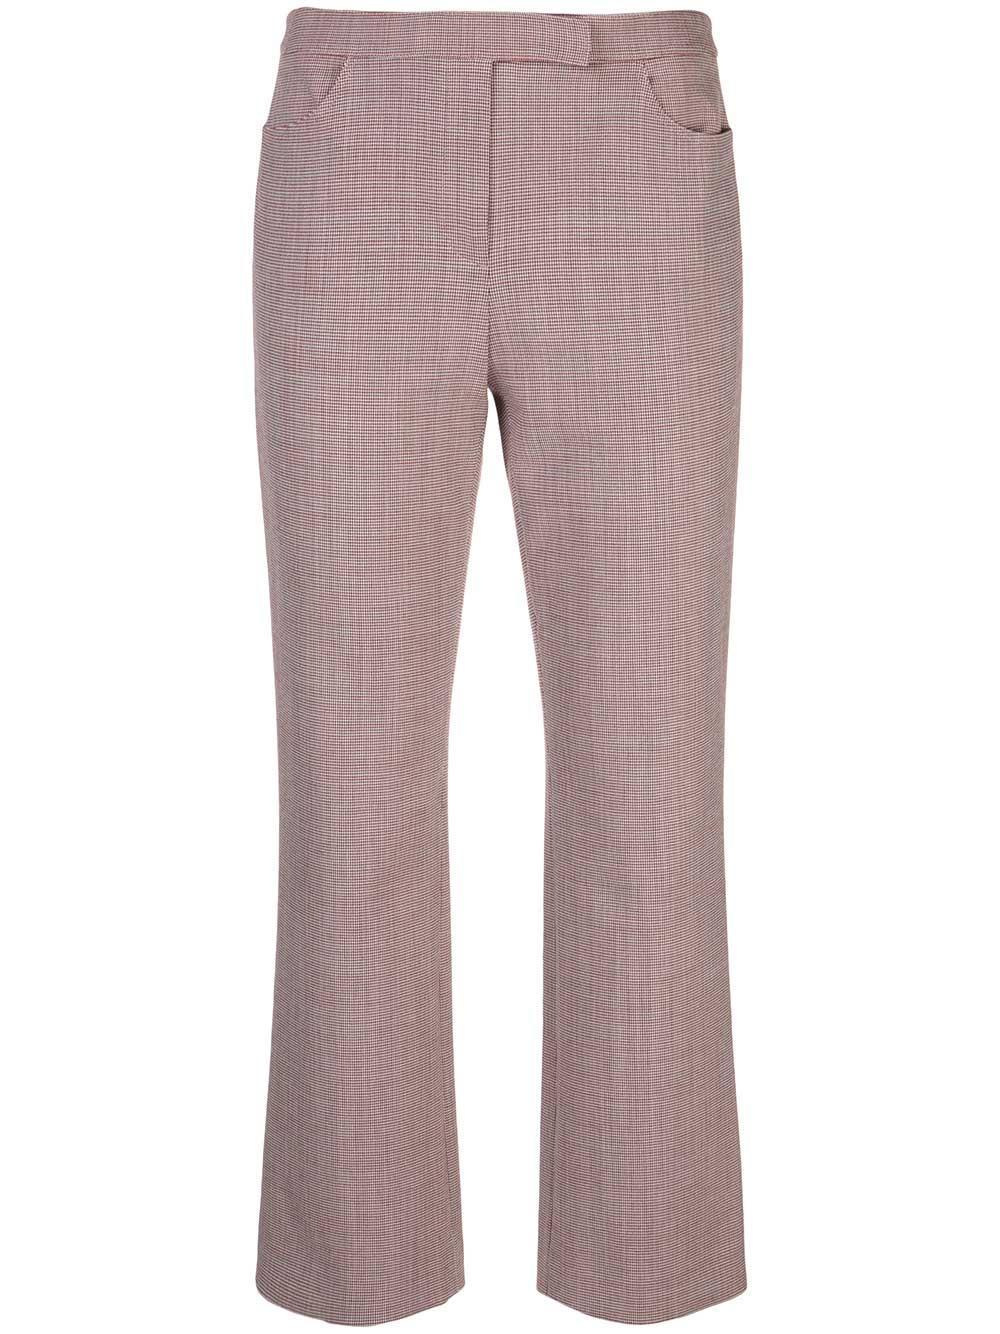 Cropped Pant In Houndstooth